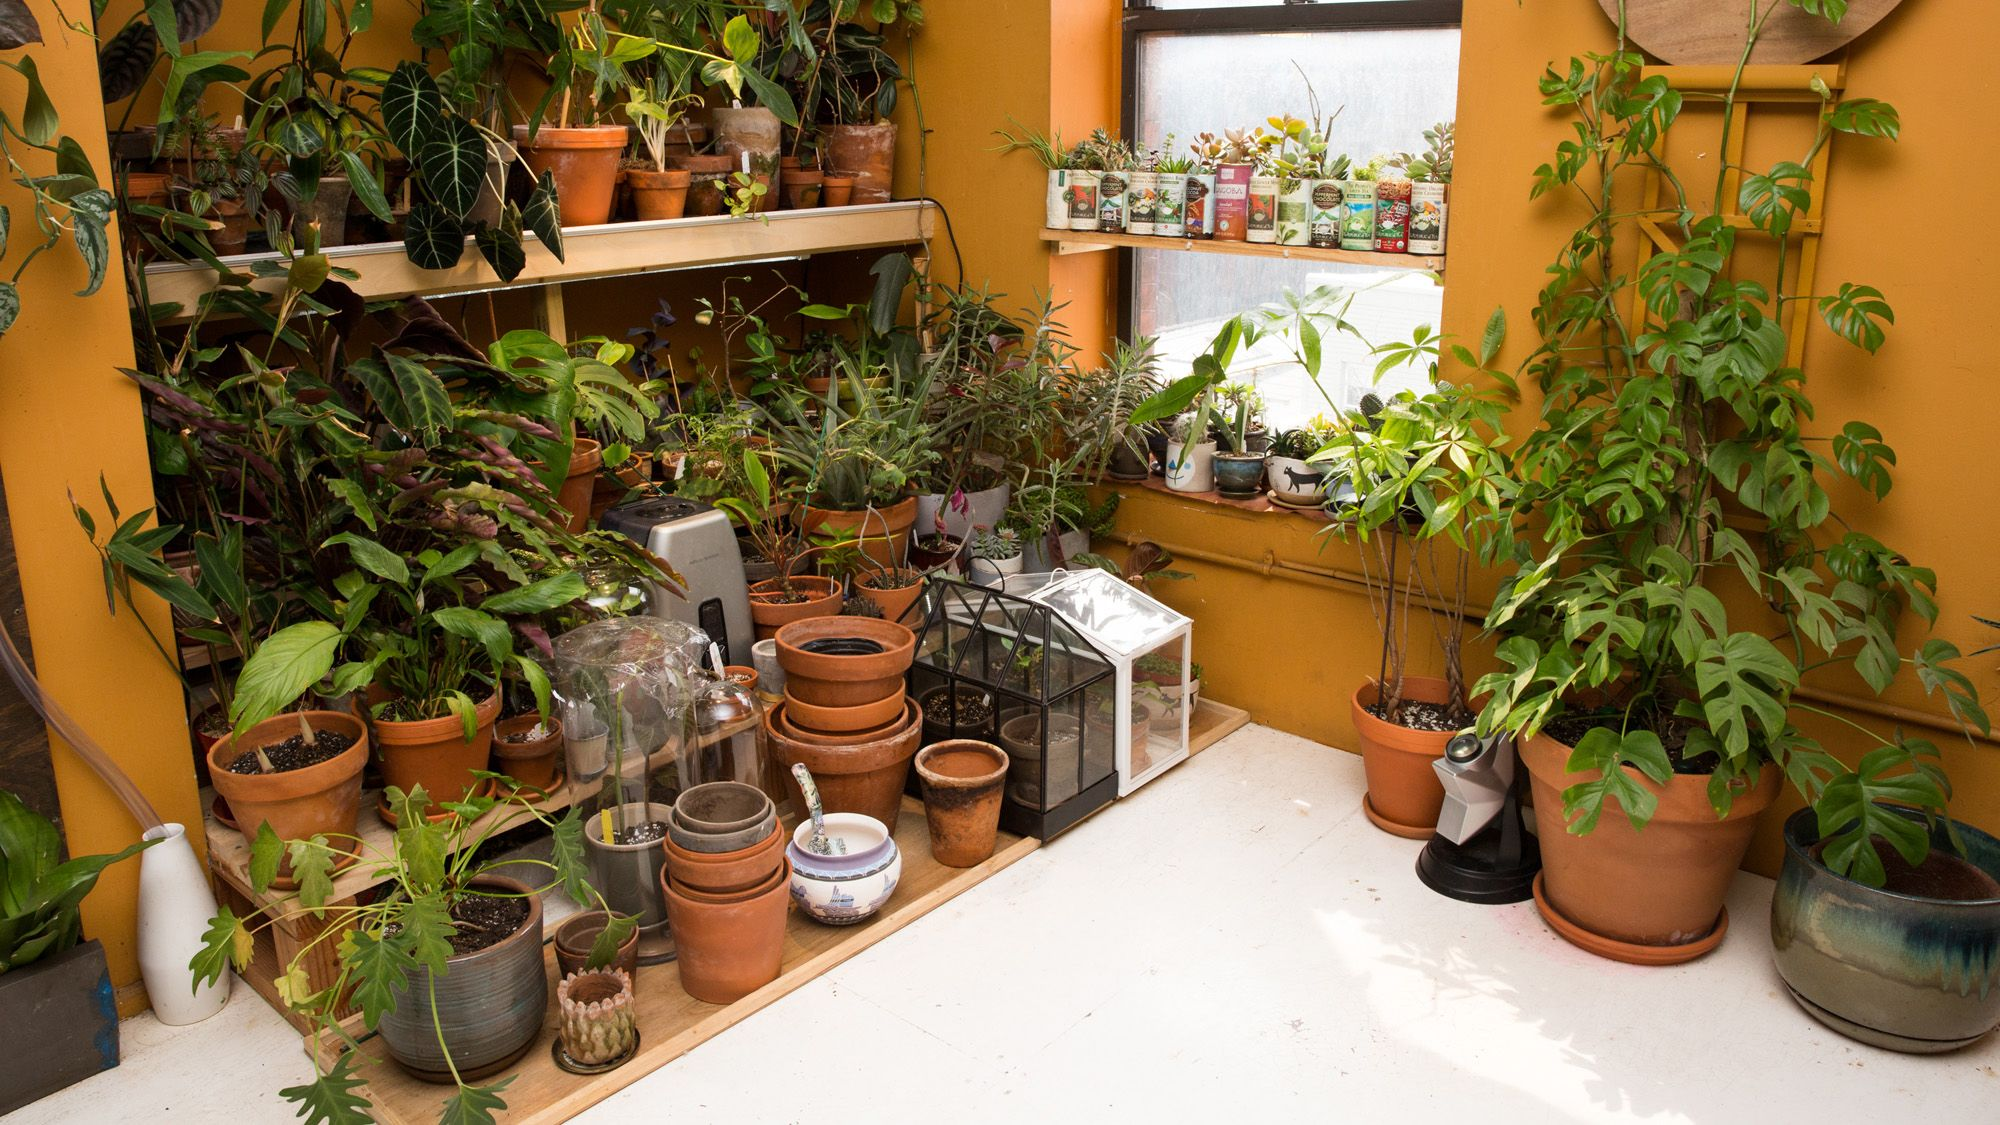 indoor houseplants do not purify the air